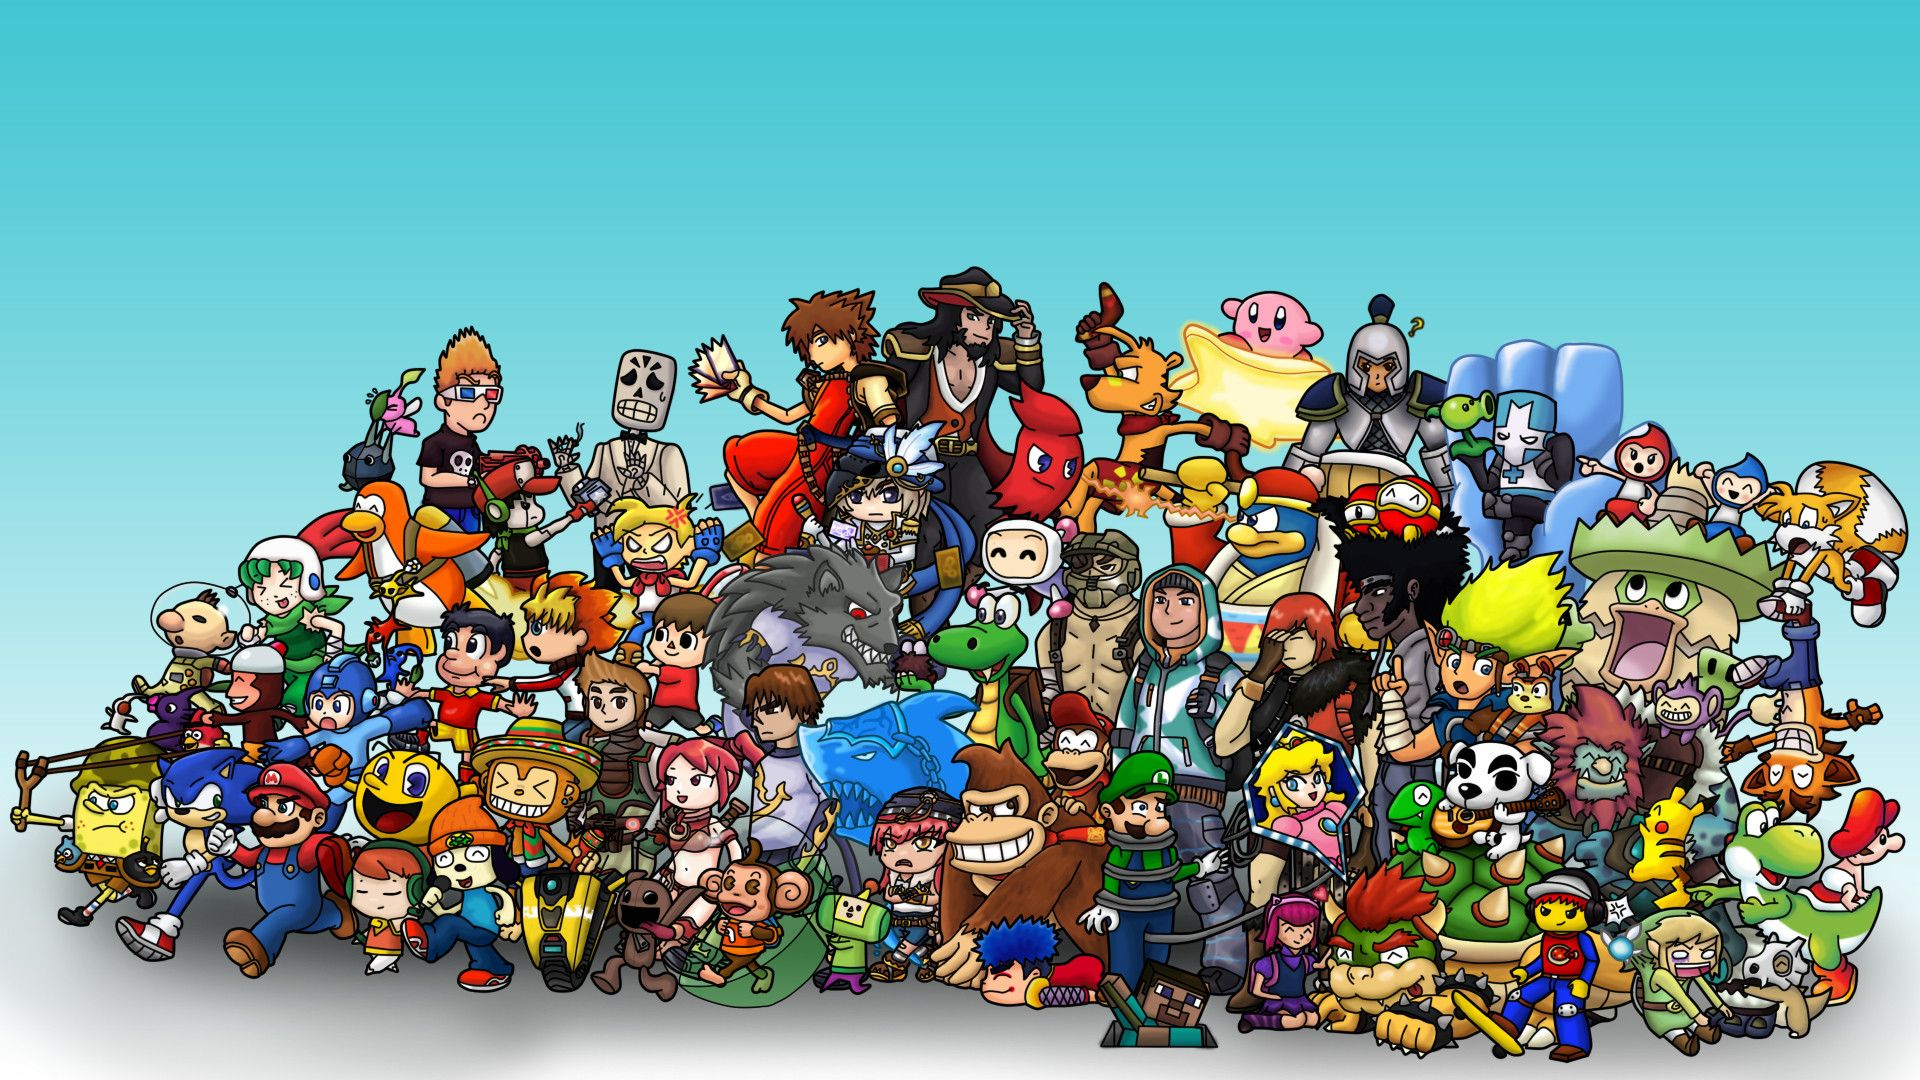 1920x1080 Video Game Wallpaper themes (66+ images)